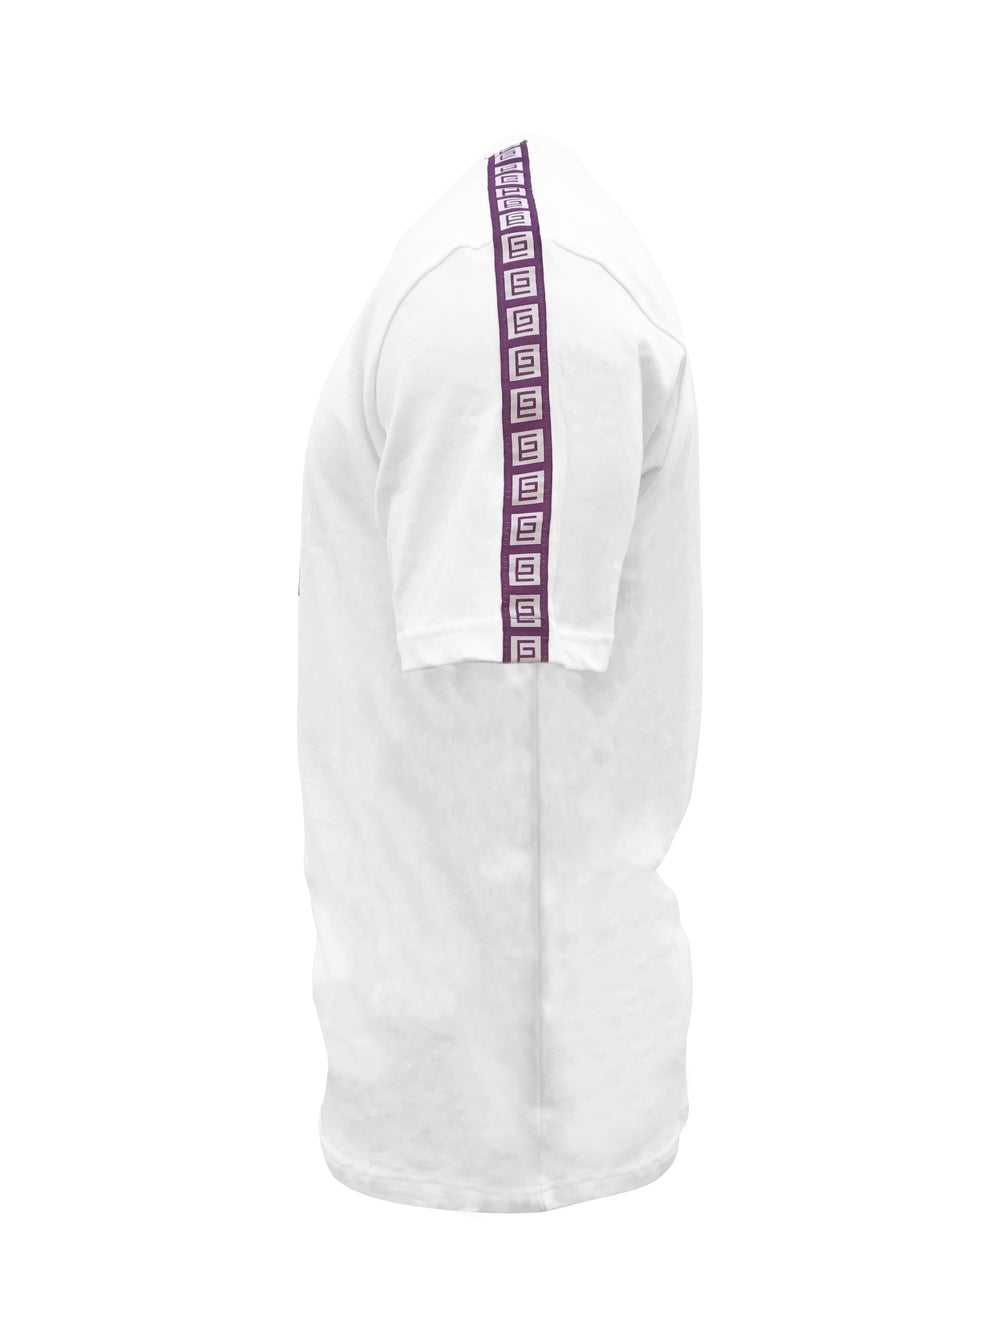 Grav Tee with Ribbon Down Sleeve (White/Purple) - Gravitated Equations